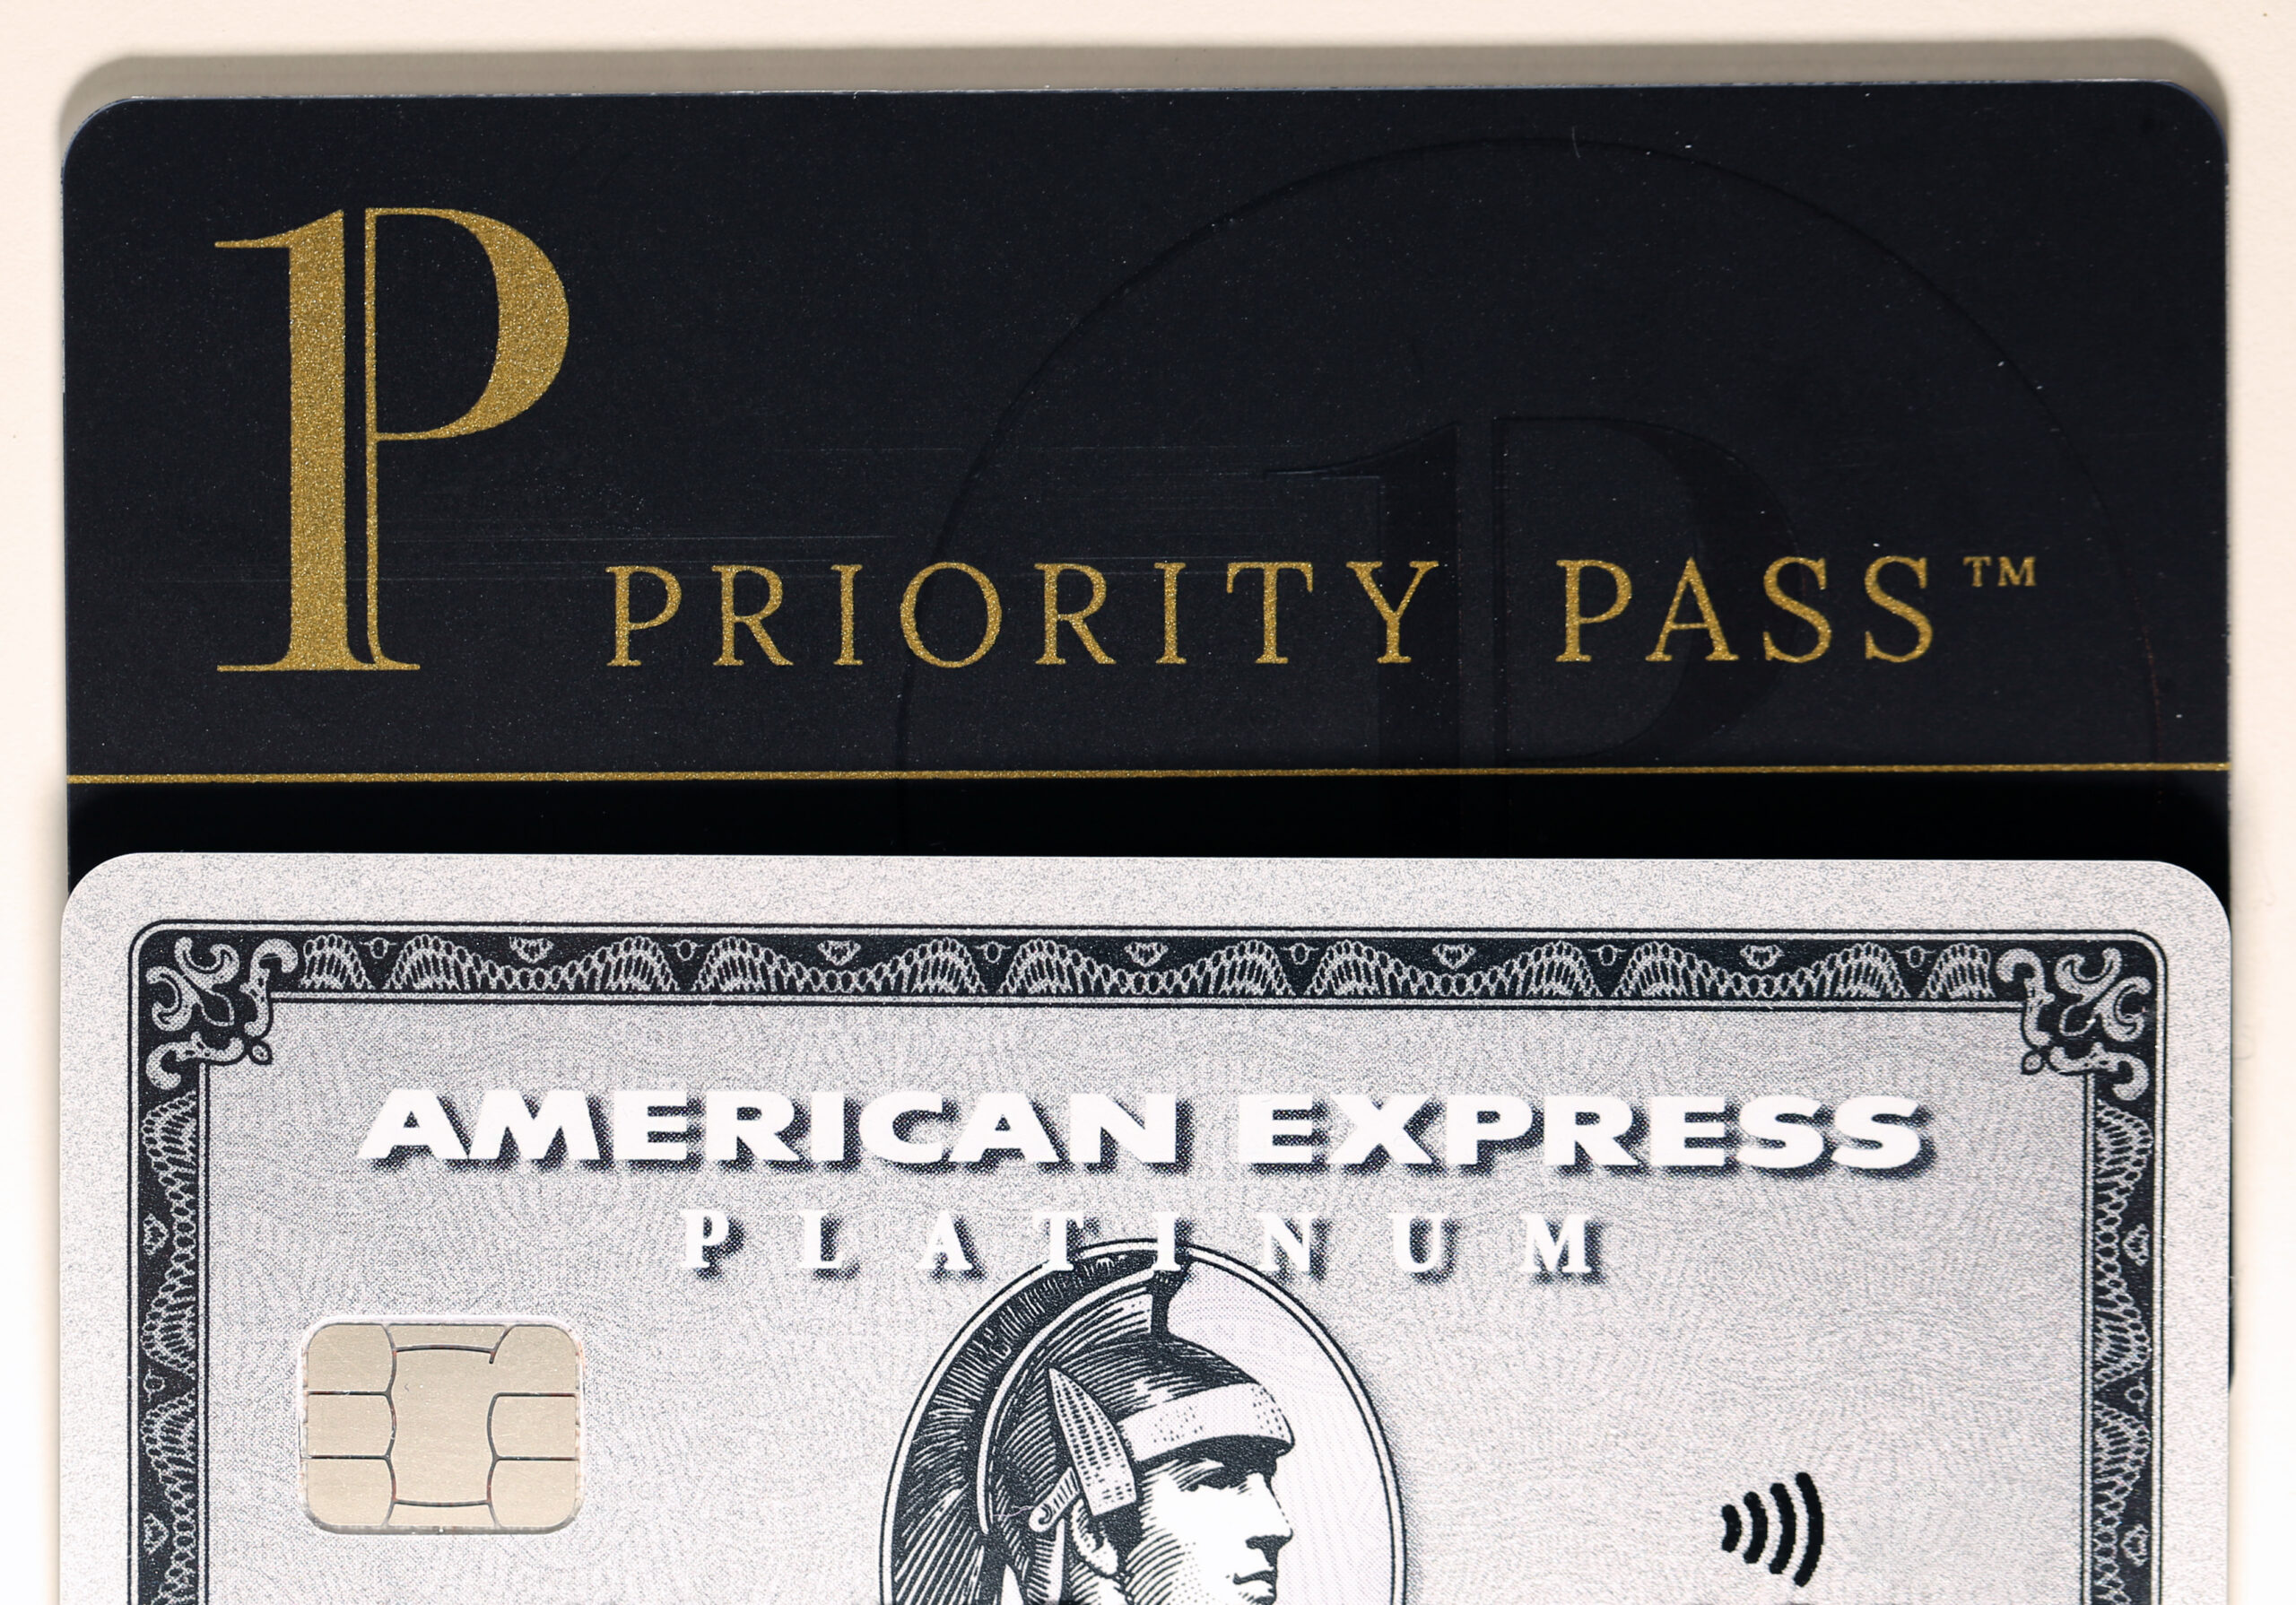 The American Express Platinum Card has an annual fee of $550 per year as of 2021.